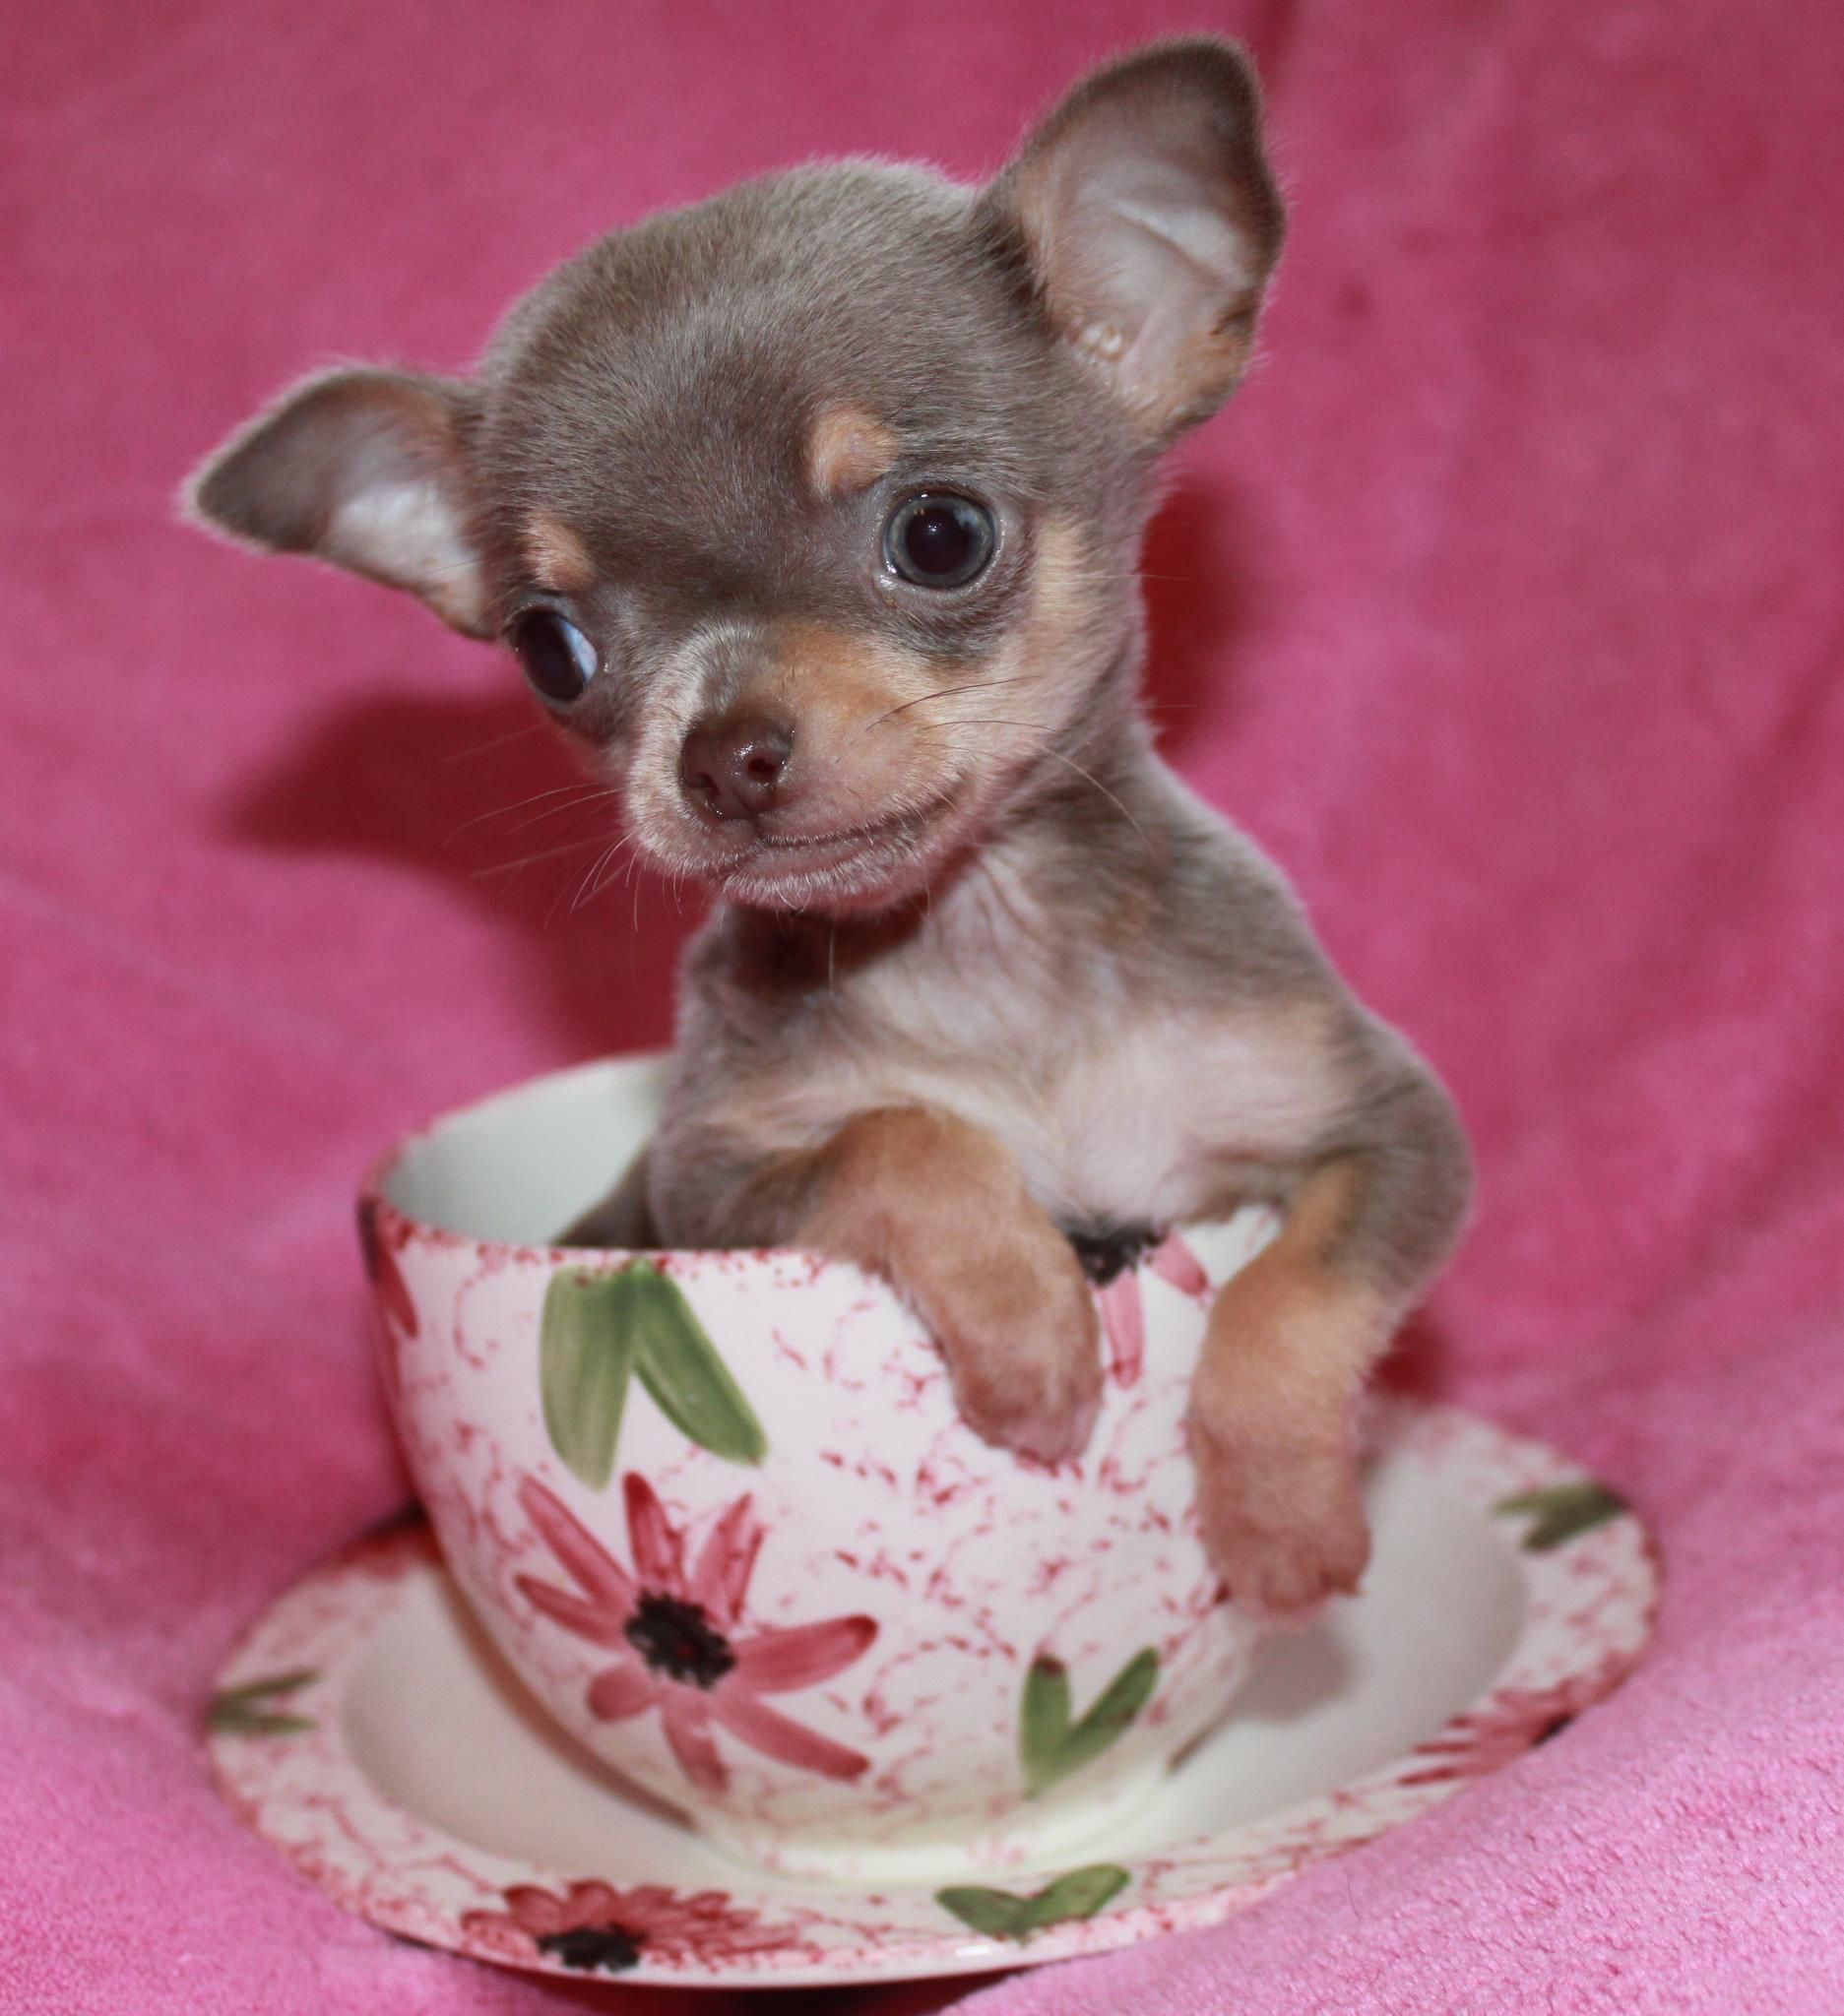 Chihuahua Puppies For Sale From A Top Class Reputable Breeder Chihuahua Puppies Teacup Chihuahua Puppies Chihuahua Puppies For Sale